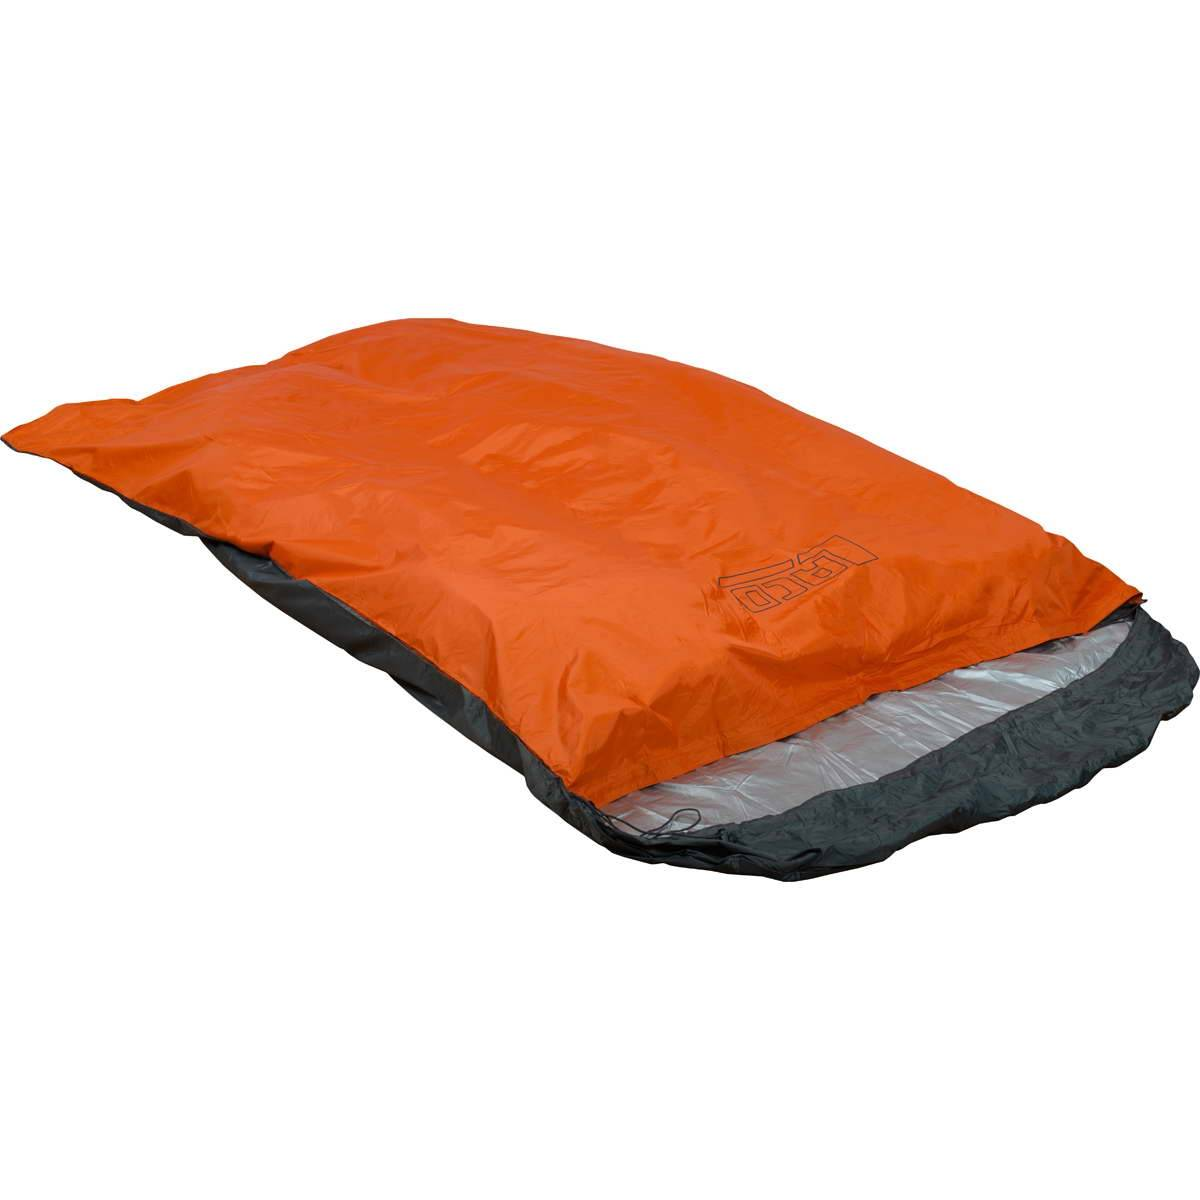 LACD Bivy Bag Light 2 - Biwaksack orange - Bild 1